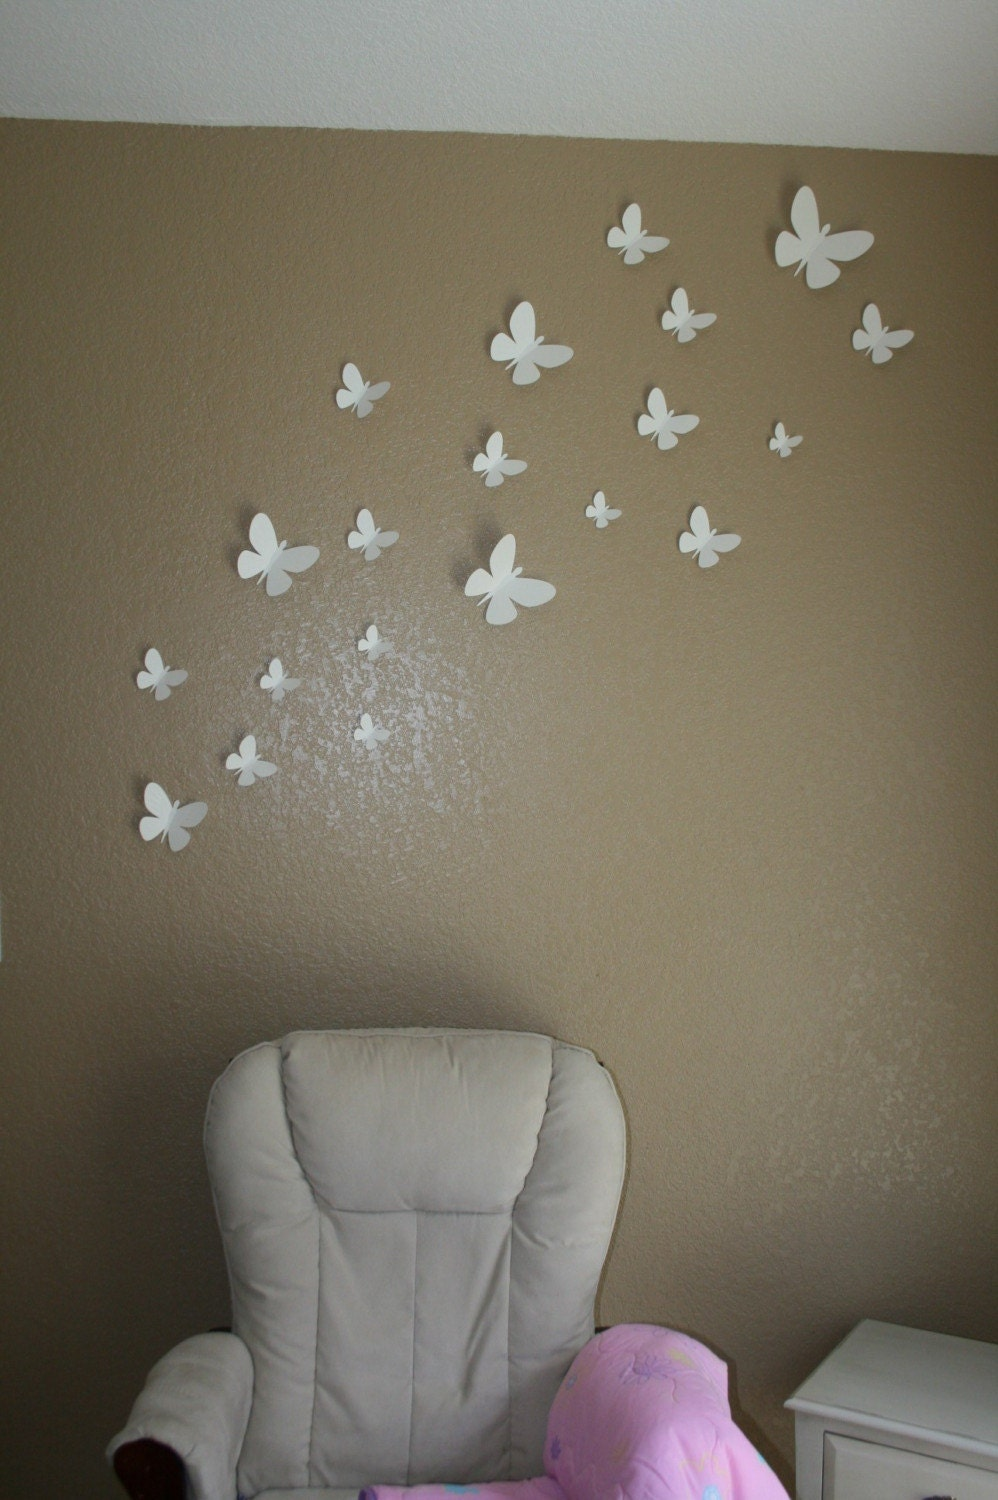 3d Wall Art For Contemporary Homes: 3D Butterfly Wall Decor Available In Any Color By